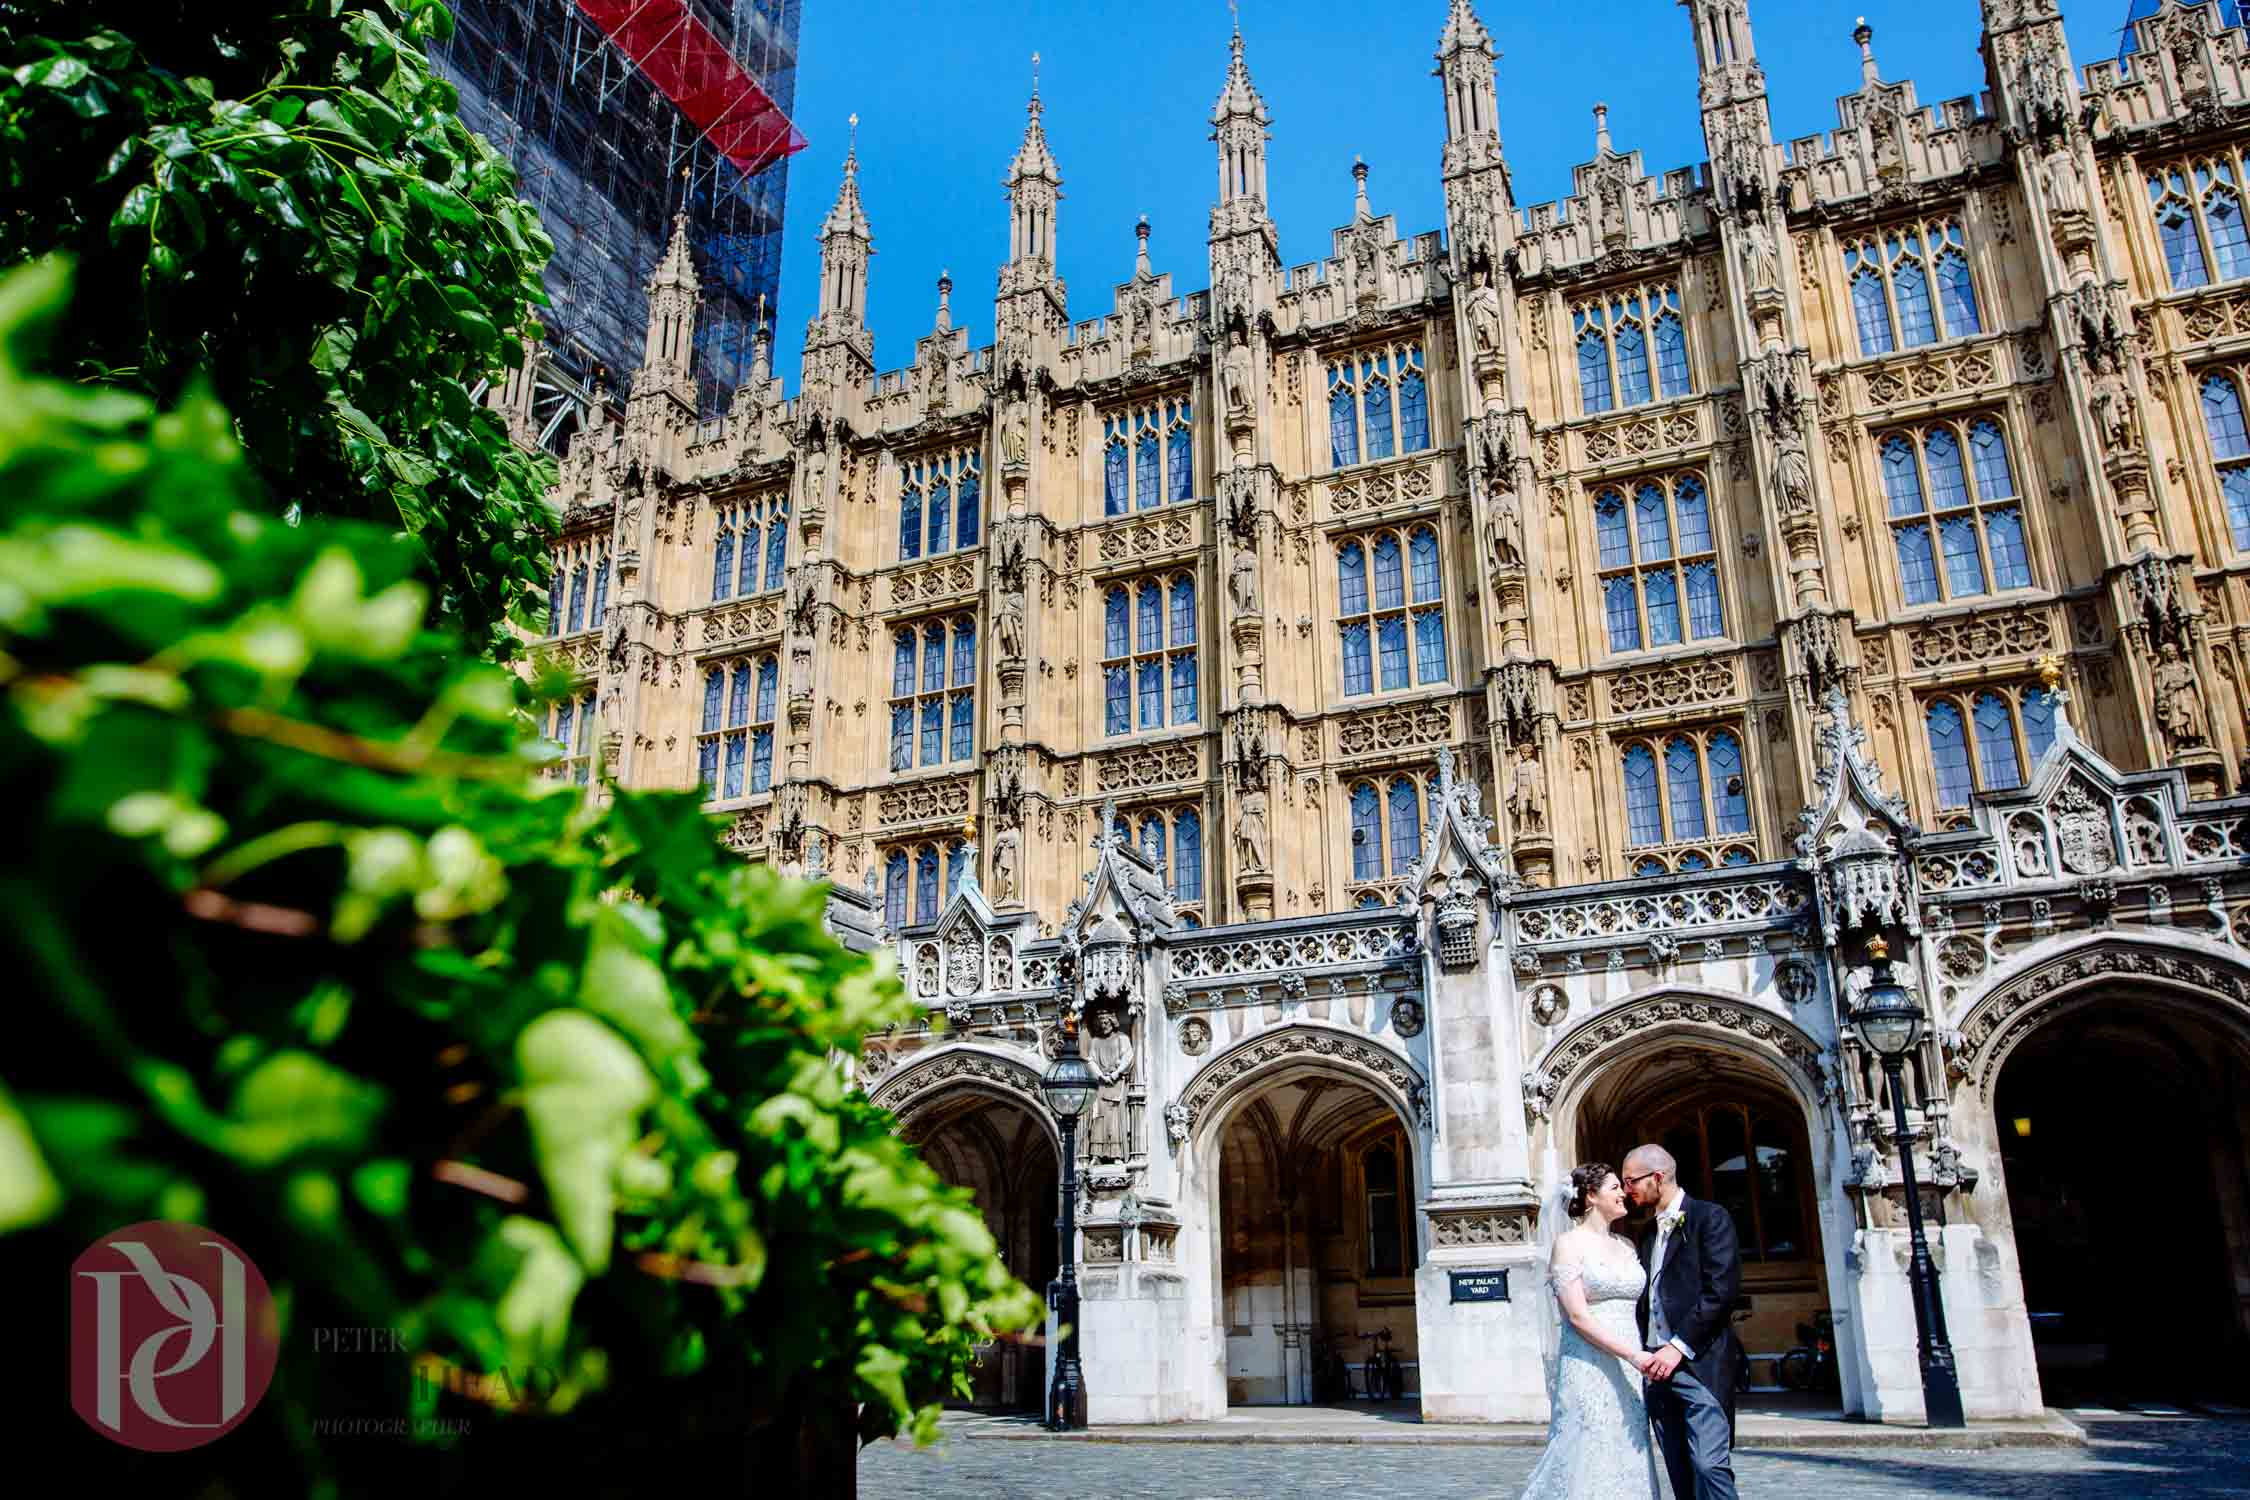 Wedding Photography at The Palace of Westminster London